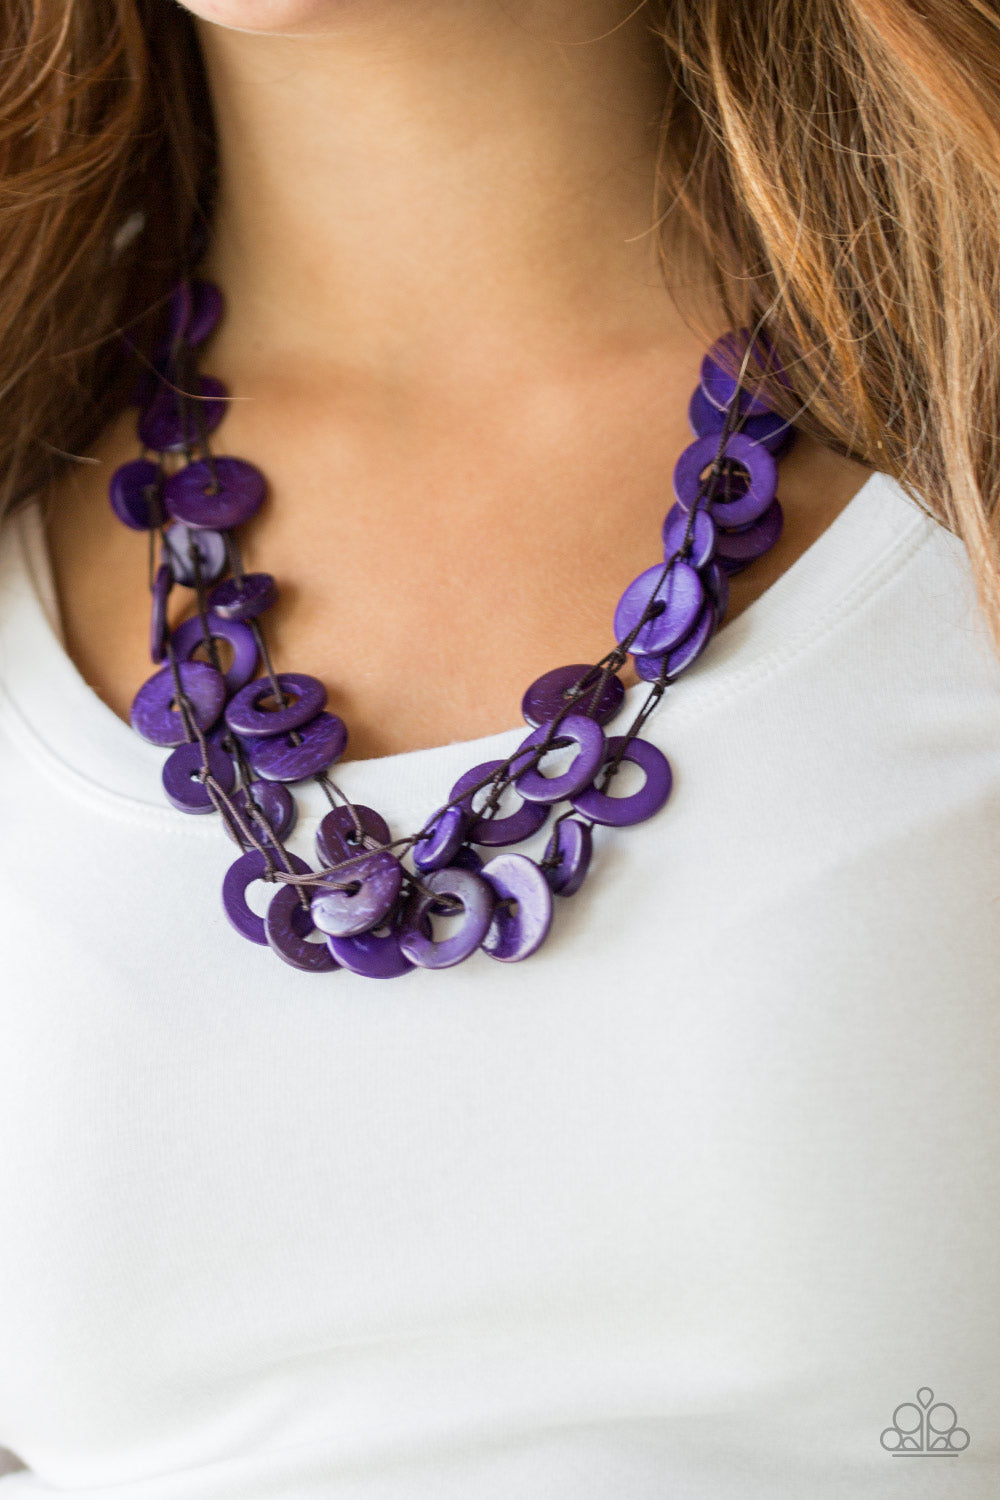 Paparazzi - Wonderfully Walla Walla - Purple Wood Necklace - Classy Jewels by Linda